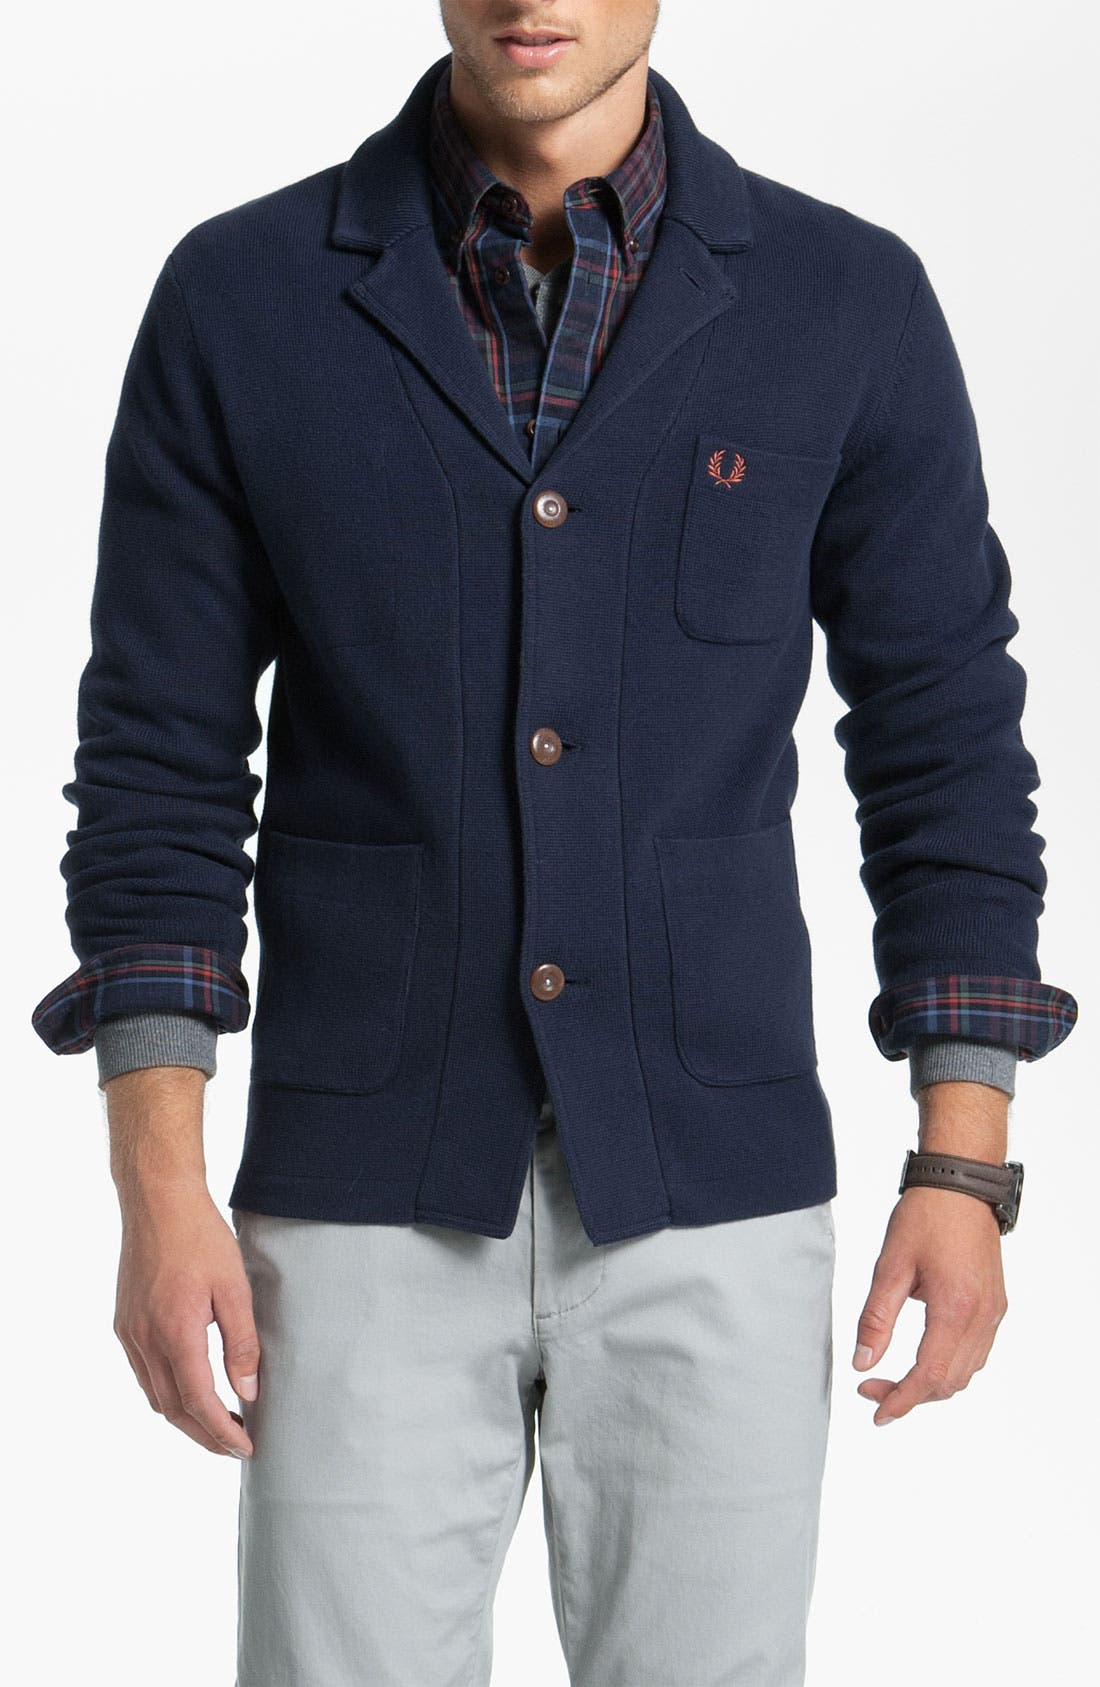 Alternate Image 1 Selected - Fred Perry Jacket Cardigan